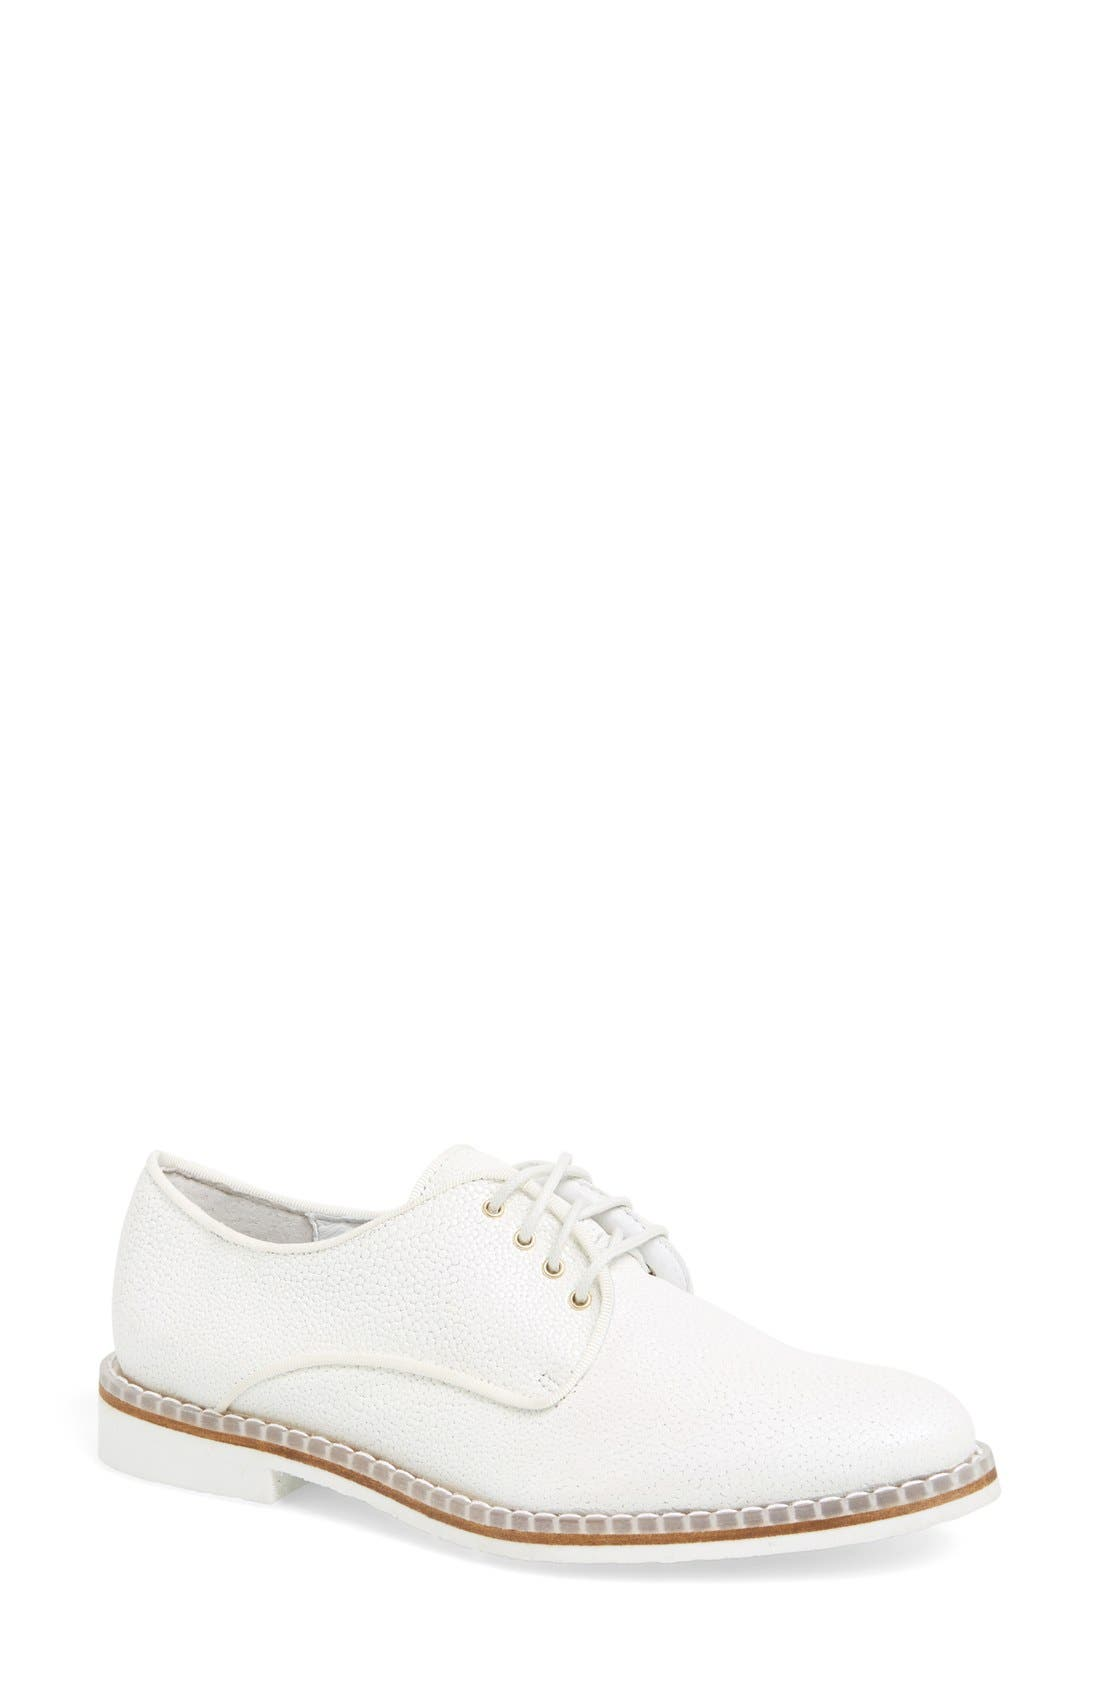 'Zoe' Stingray Embossed Leather Oxford,                             Main thumbnail 1, color,